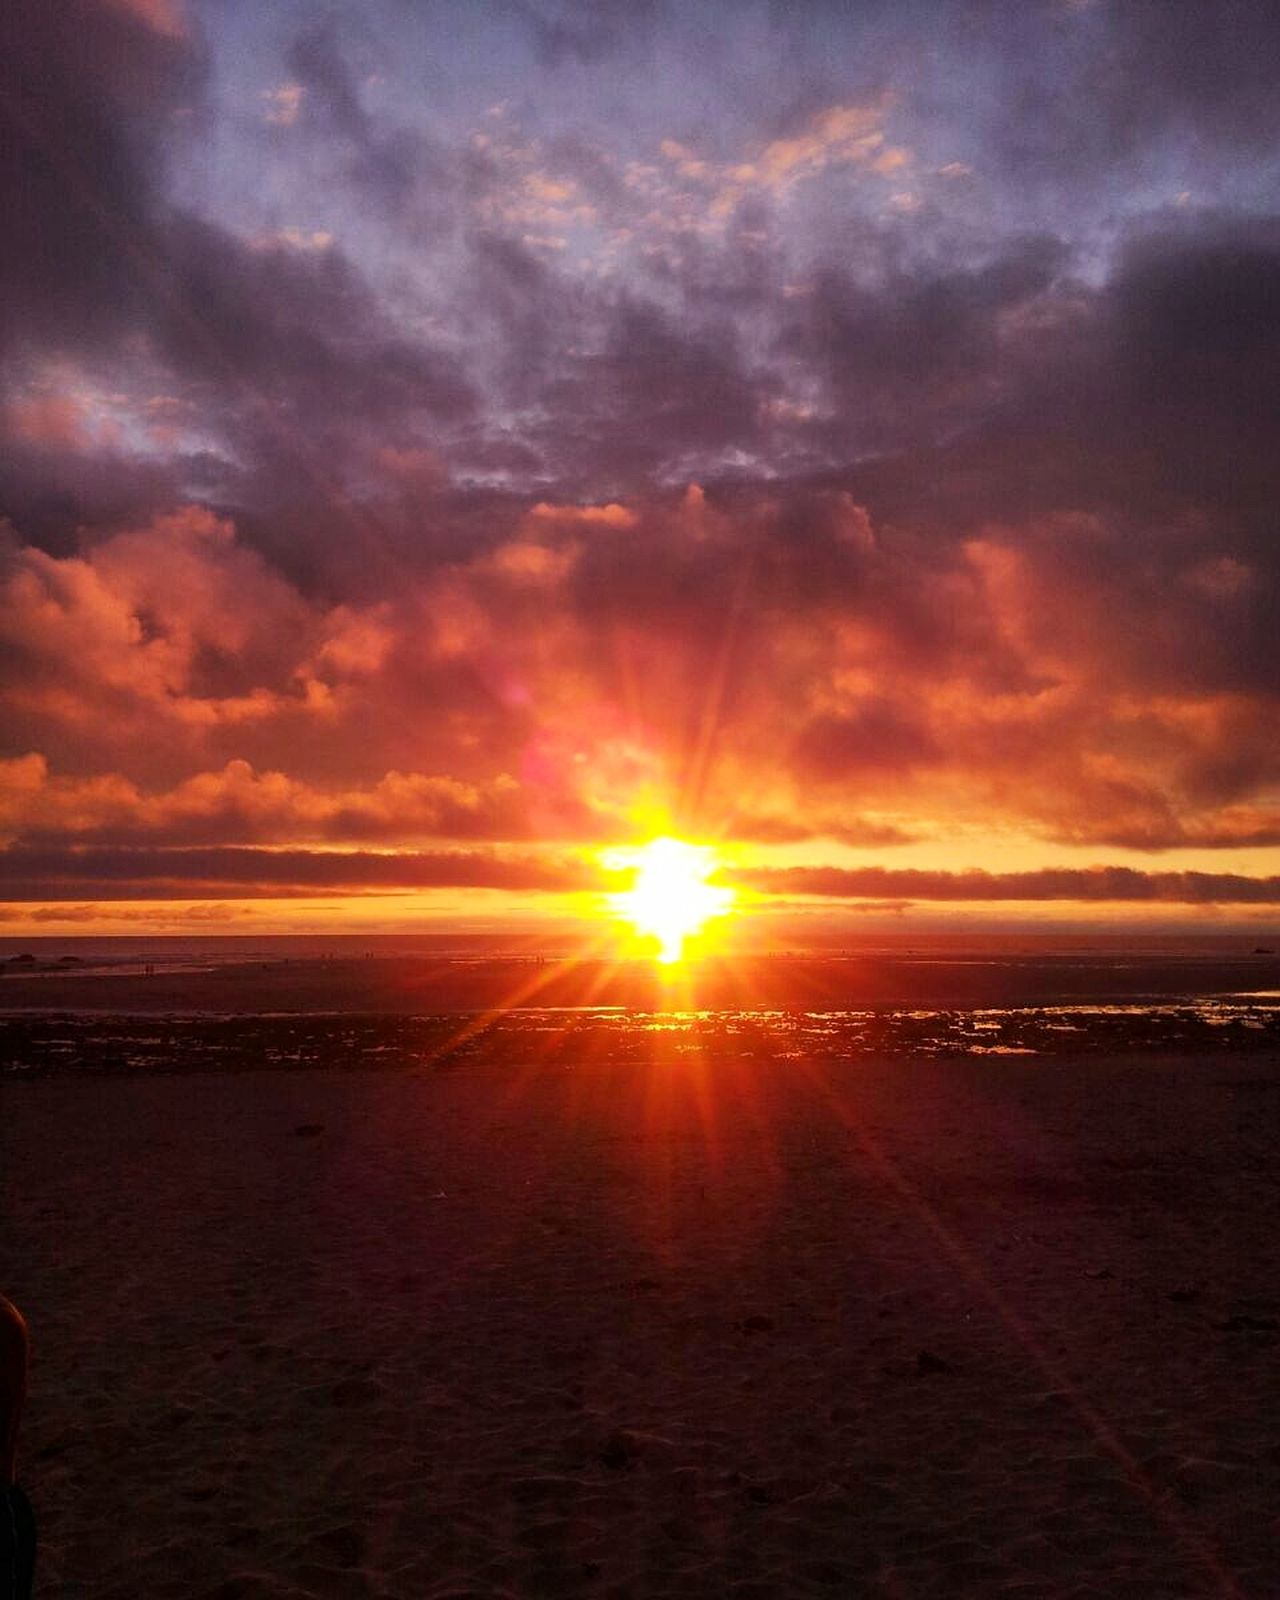 Photo Photography Sun Sunset Cloud - Sky Clouds Clouds And Sky Ocean Sky Beautiful View Beauty Orange Sky Sunset Sand Sand And Ocean Beach England TBT  Nicetime MyFavView Catchthemoment CaptureTheMoment